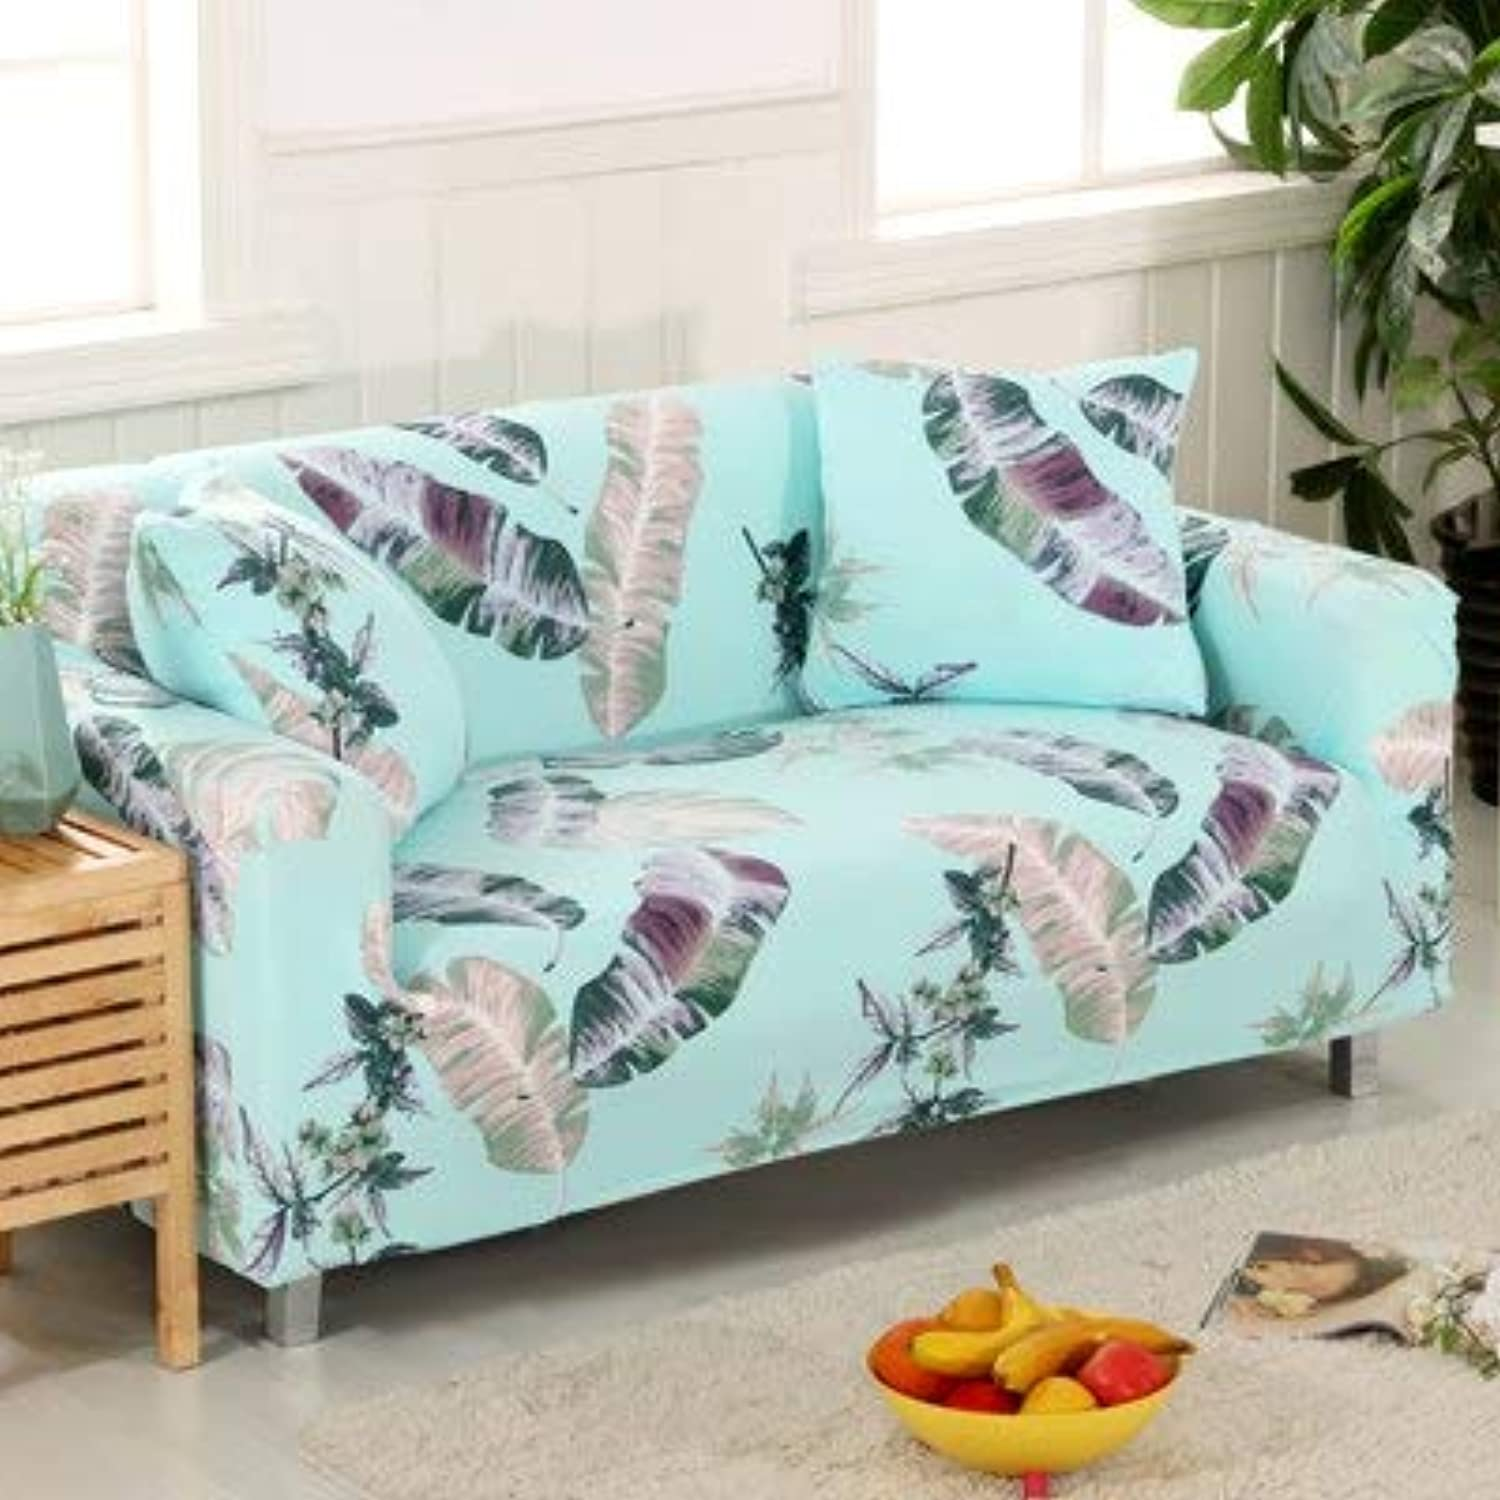 Lvory Stripe Sofa Cover All-Inclusive Elastic Spandex Slipcovers Stretch Corner Sectional Predective Couch Cover Nordic Simple   20, Double Seater